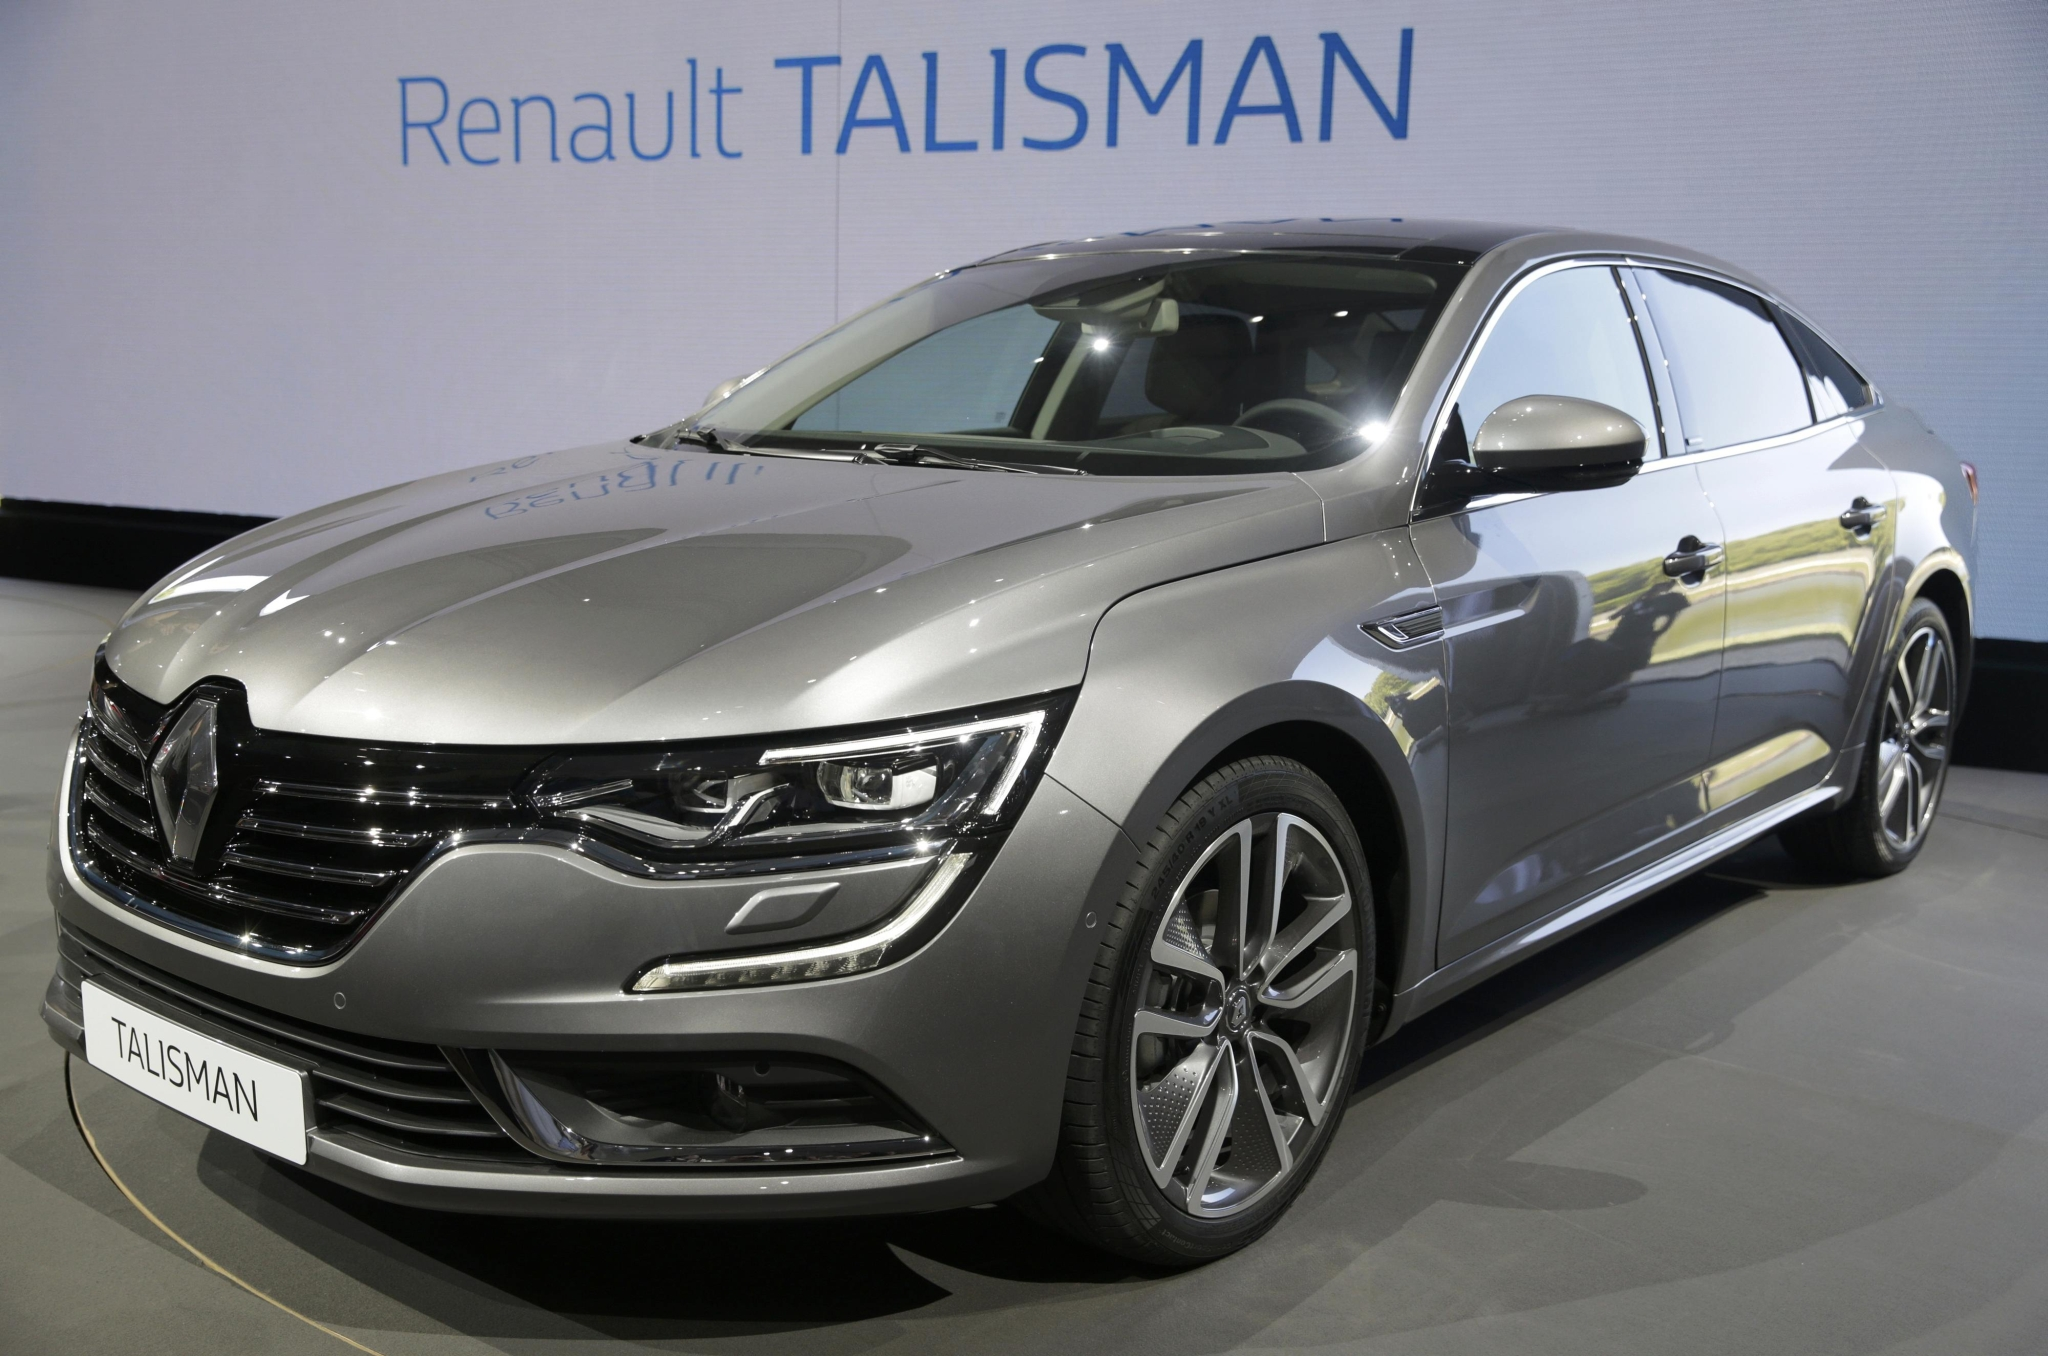 The new Renault's new D-segment saloon Talisman is unveiled during a press event at the Chateau de Chantilly near Paris